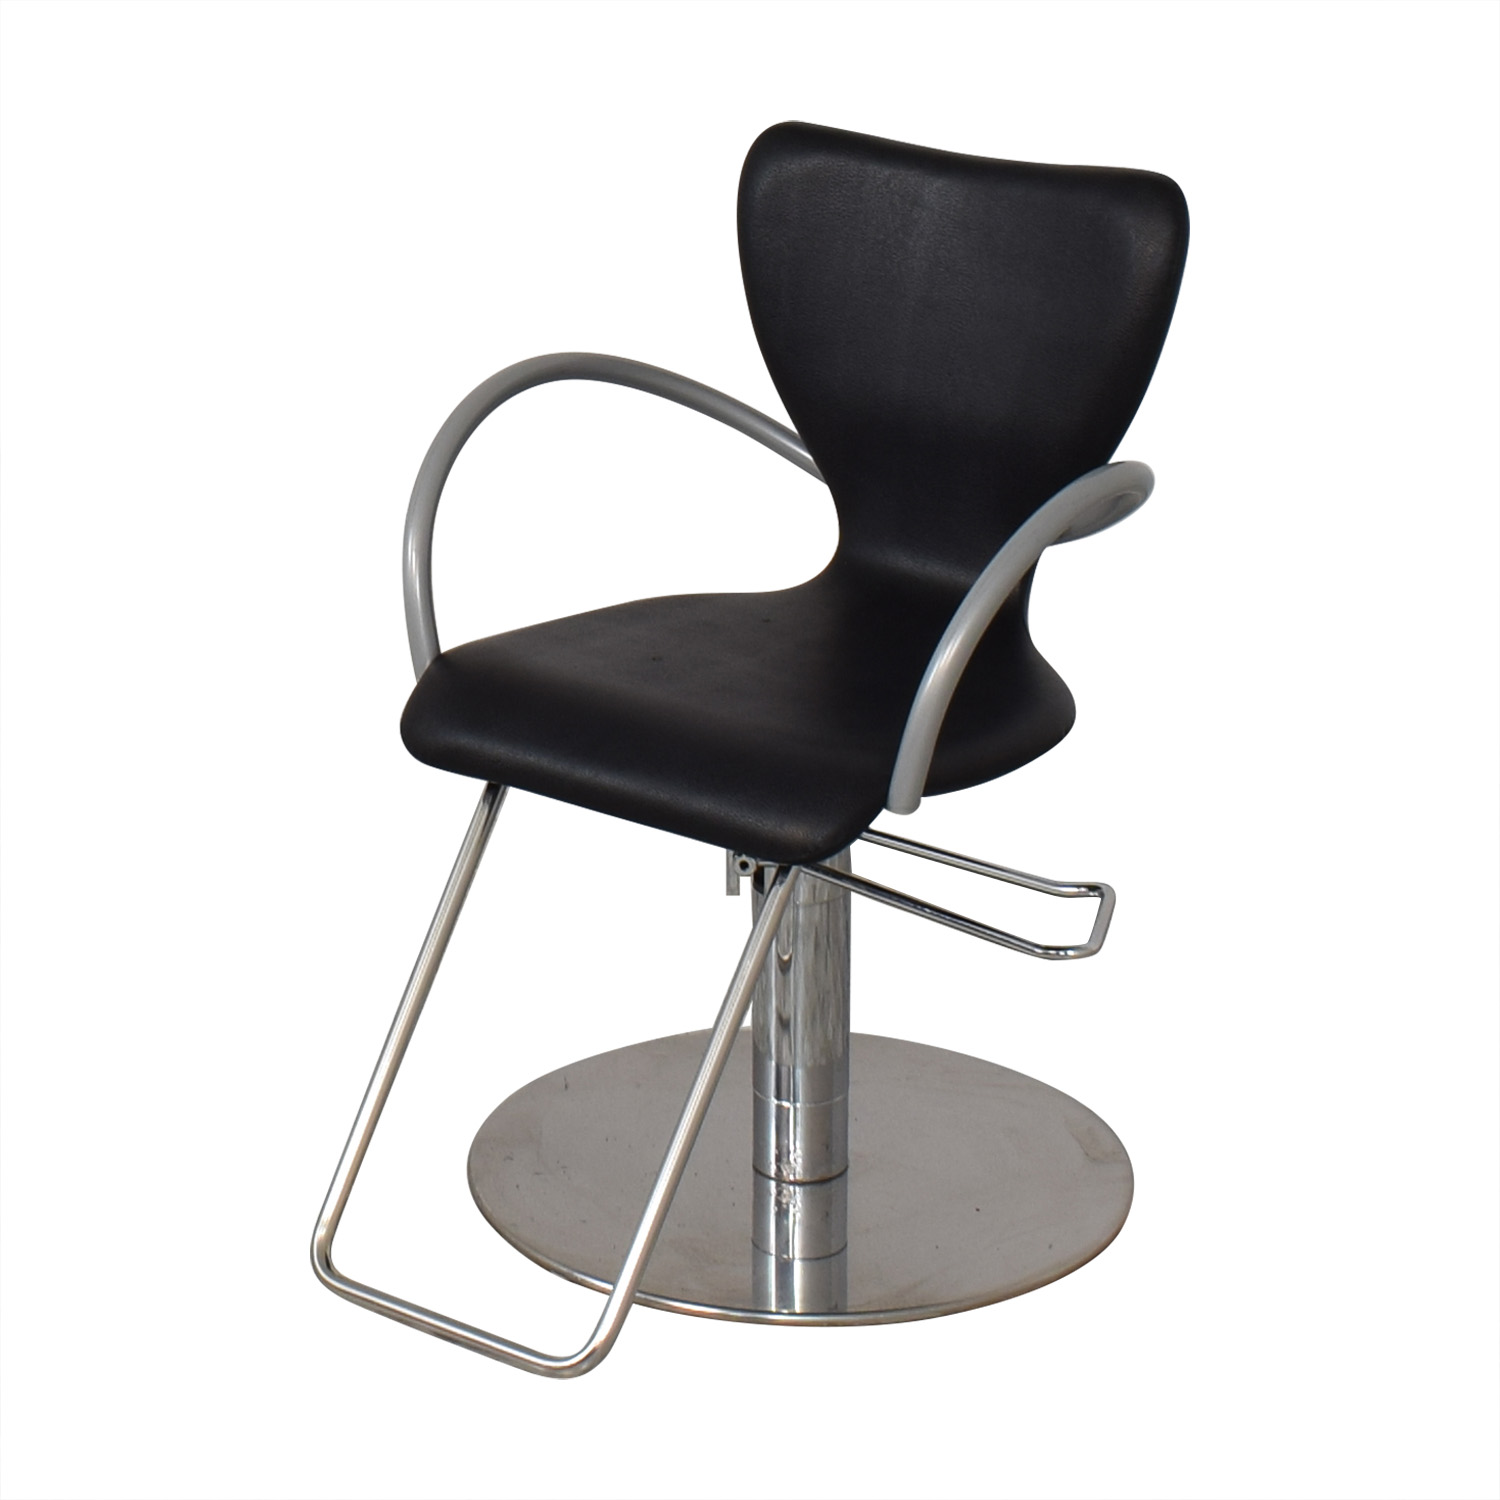 Gamma & Bross Gamma Bross Folda Parrot Styling Chair nyc